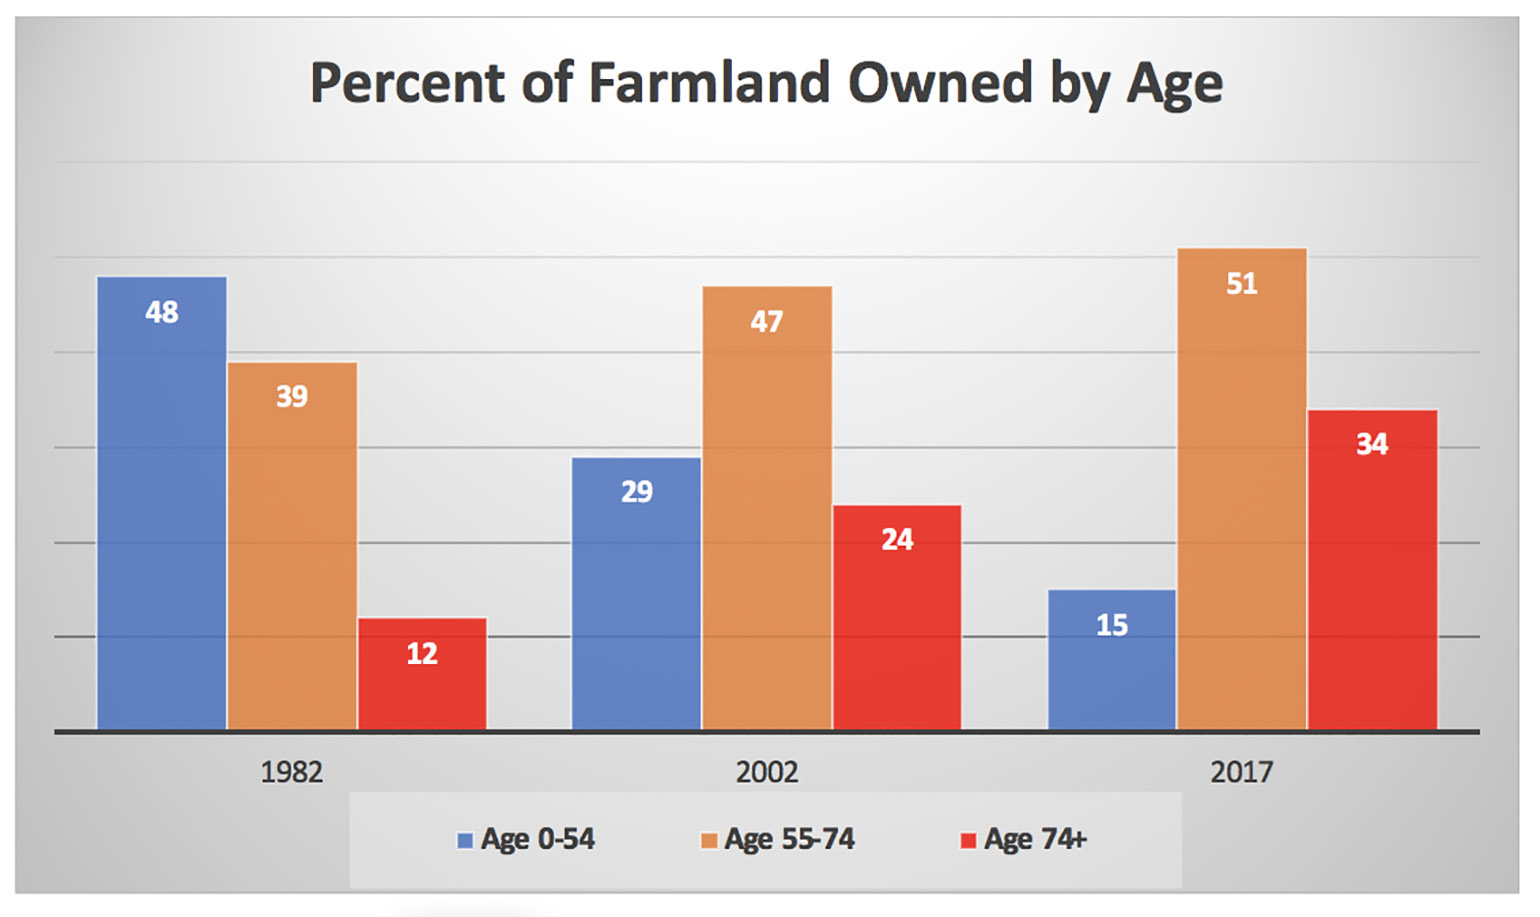 010521PercentFarmlandOwnedByAge800